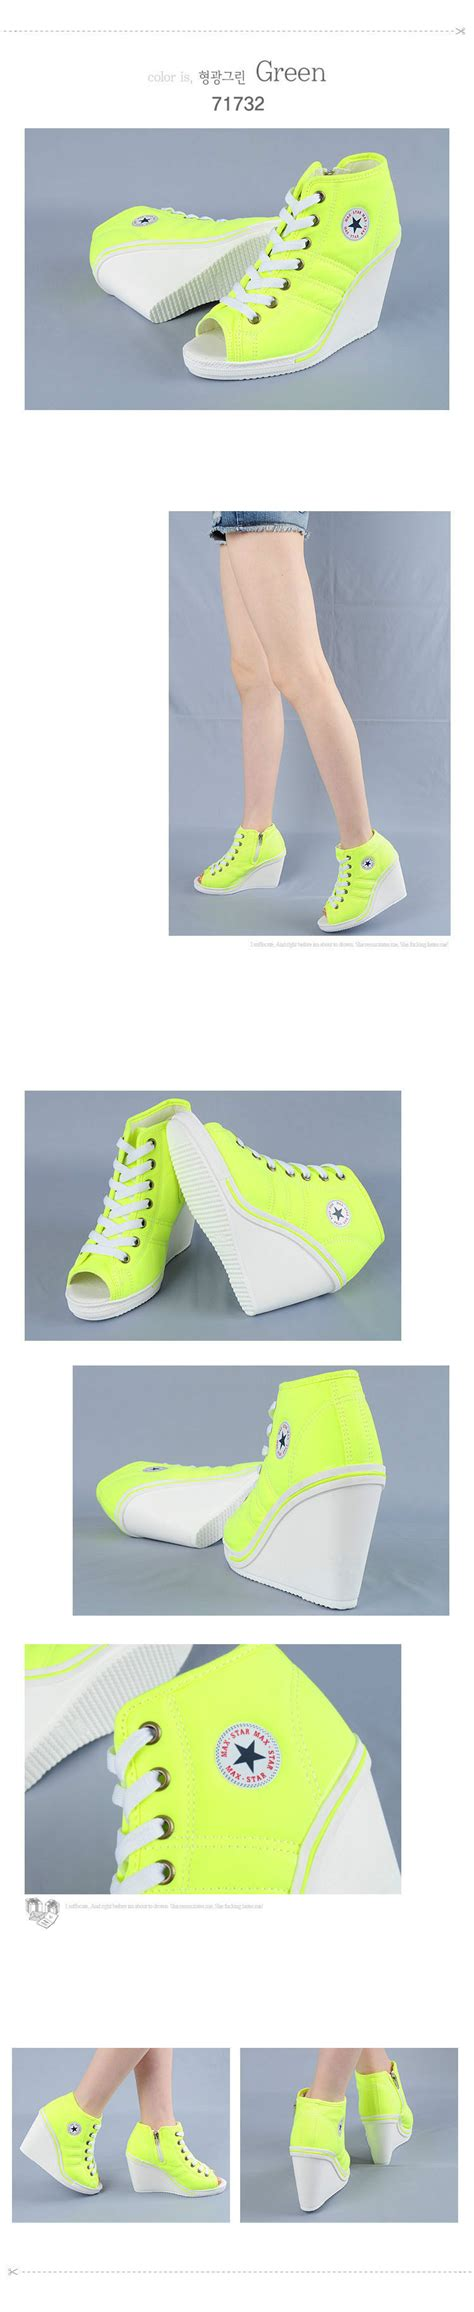 Wedges Fashion Korea 777 3 Warna 777 toe open wedges trainers heels sneakers platform high top ankles shoes findh ebay